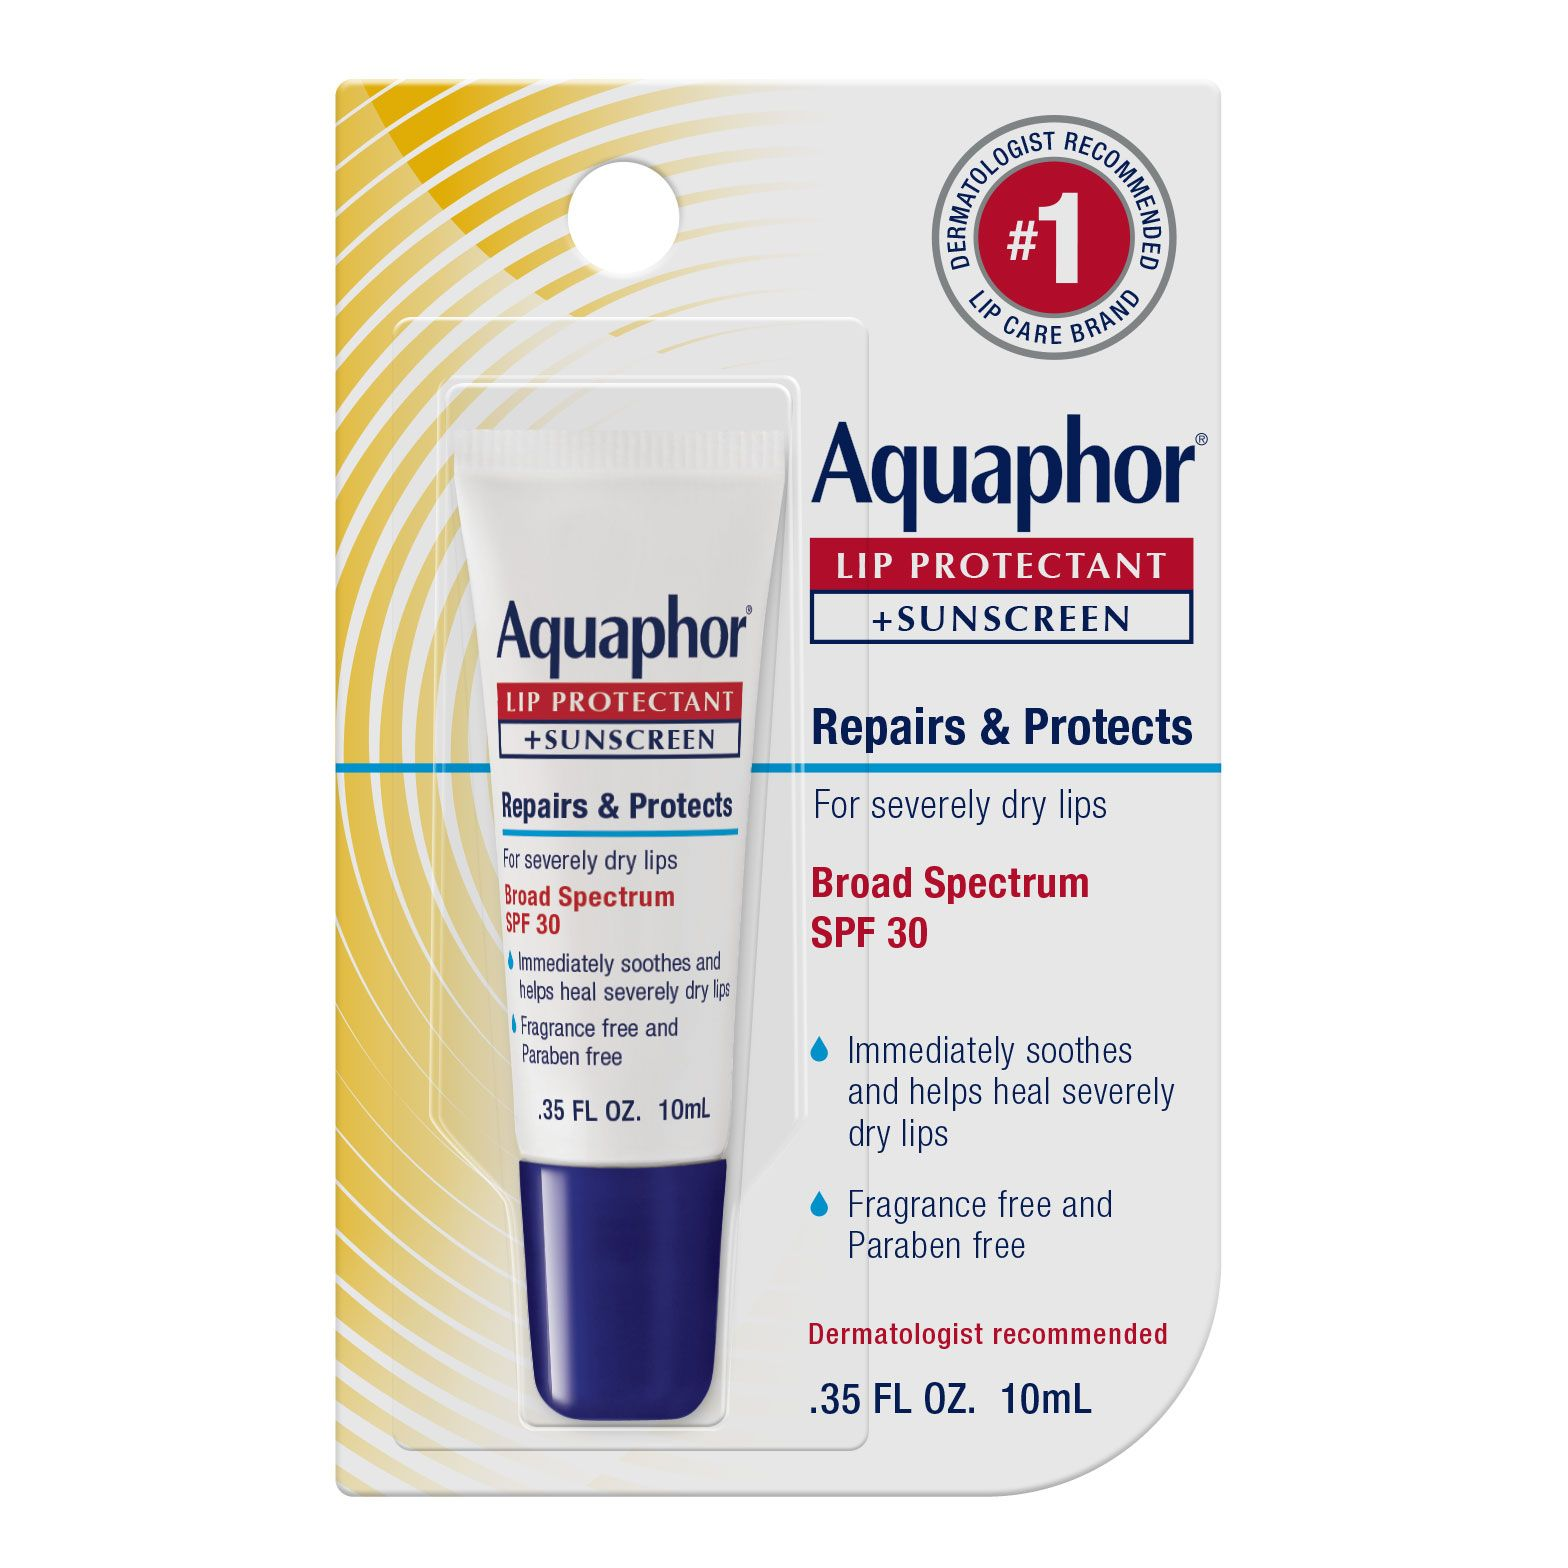 "<p>Perfect for outdoor sports, this hydrating jelly creates a barrier on lips to seal moisture in while protecting from harsh elements. ($5)</p><p><a href=""https://www.walgreens.com/store/c/aquaphor-lip-repair-%2B-protect-broad-spectrum-spf-30/ID=prod6148625-product"" target=""_blank"" data-tracking-id=""recirc-text-link"" class=""slide-buy--button"">BUY NOW</a></p><p><strong data-verified=""redactor"" data-redactor-tag=""strong"">RELATED: <a href=""http://www.redbookmag.com/beauty/tips/g3835/winter-skincare-tips/"" target=""_blank"" data-tracking-id=""recirc-text-link"">23 Ways to Get Gorgeous Skin and Hair All Winter Long</a><span class=""redactor-invisible-space""><a href=""http://www.redbookmag.com/beauty/tips/g3835/winter-skincare-tips/""></a></span></strong><br></p>"